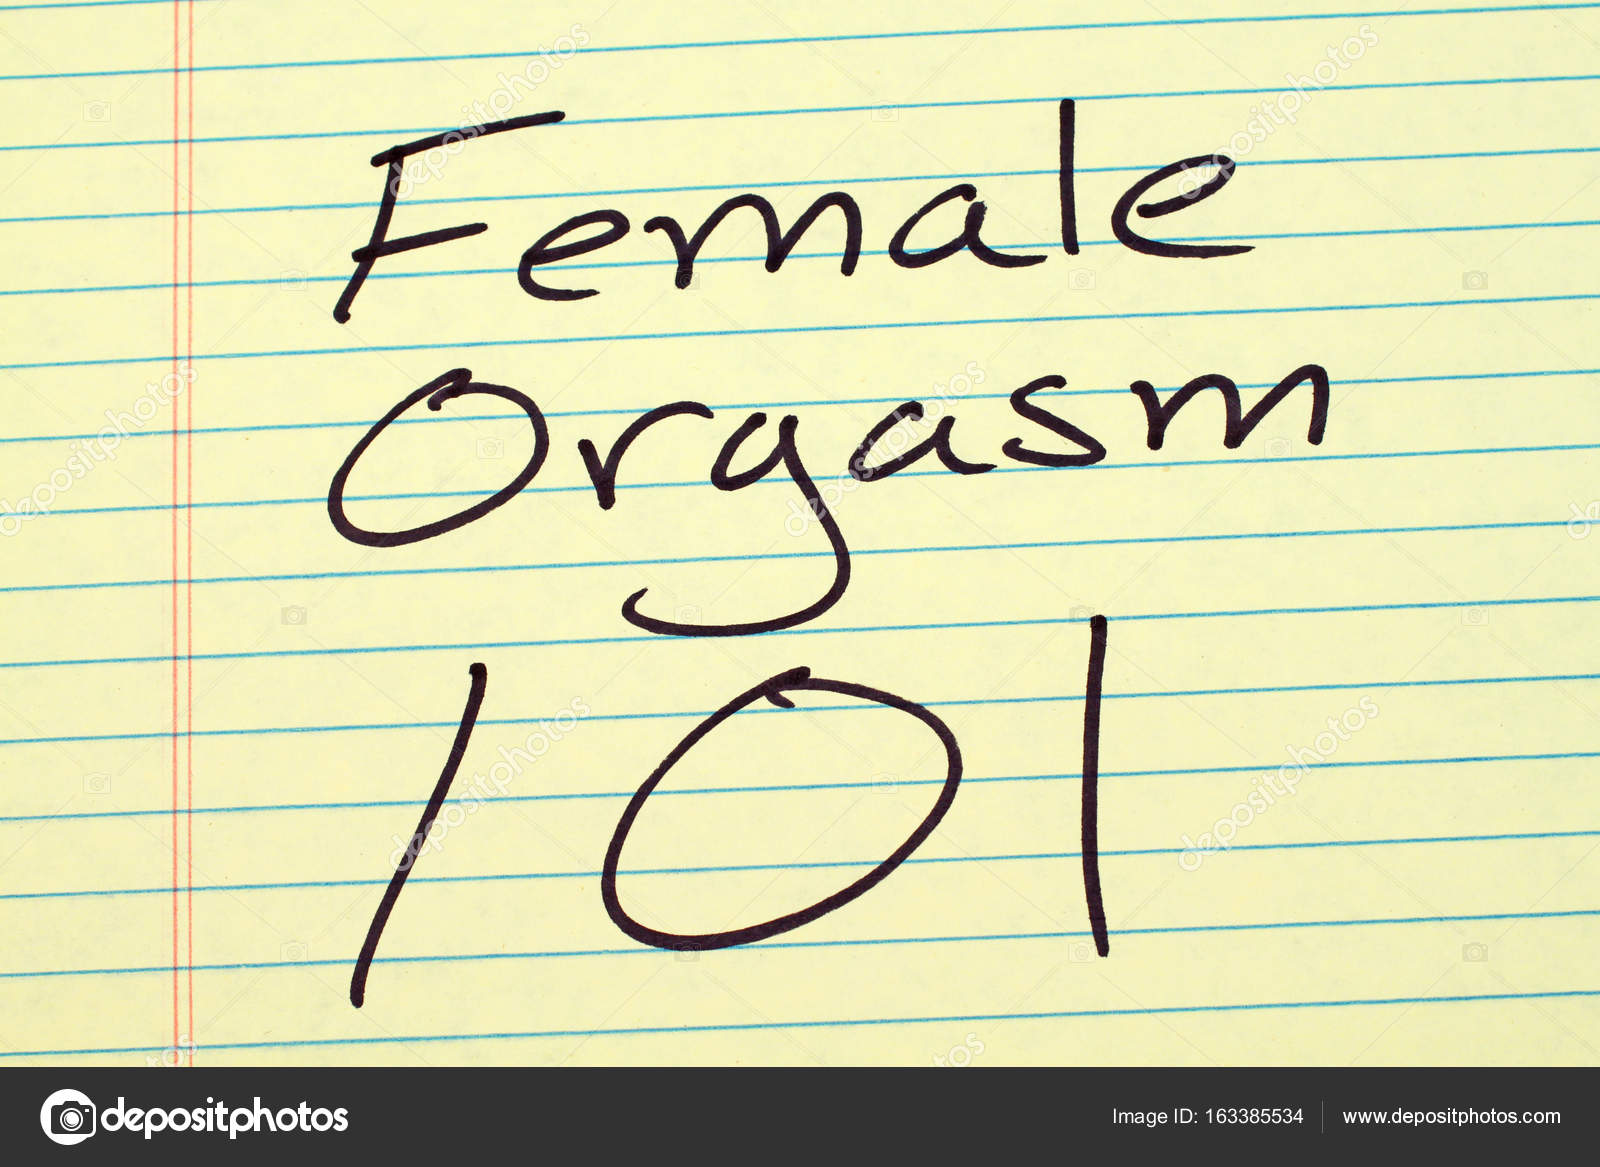 Female Orgasm 101 On A Yellow Legal Pad — Stock Photo